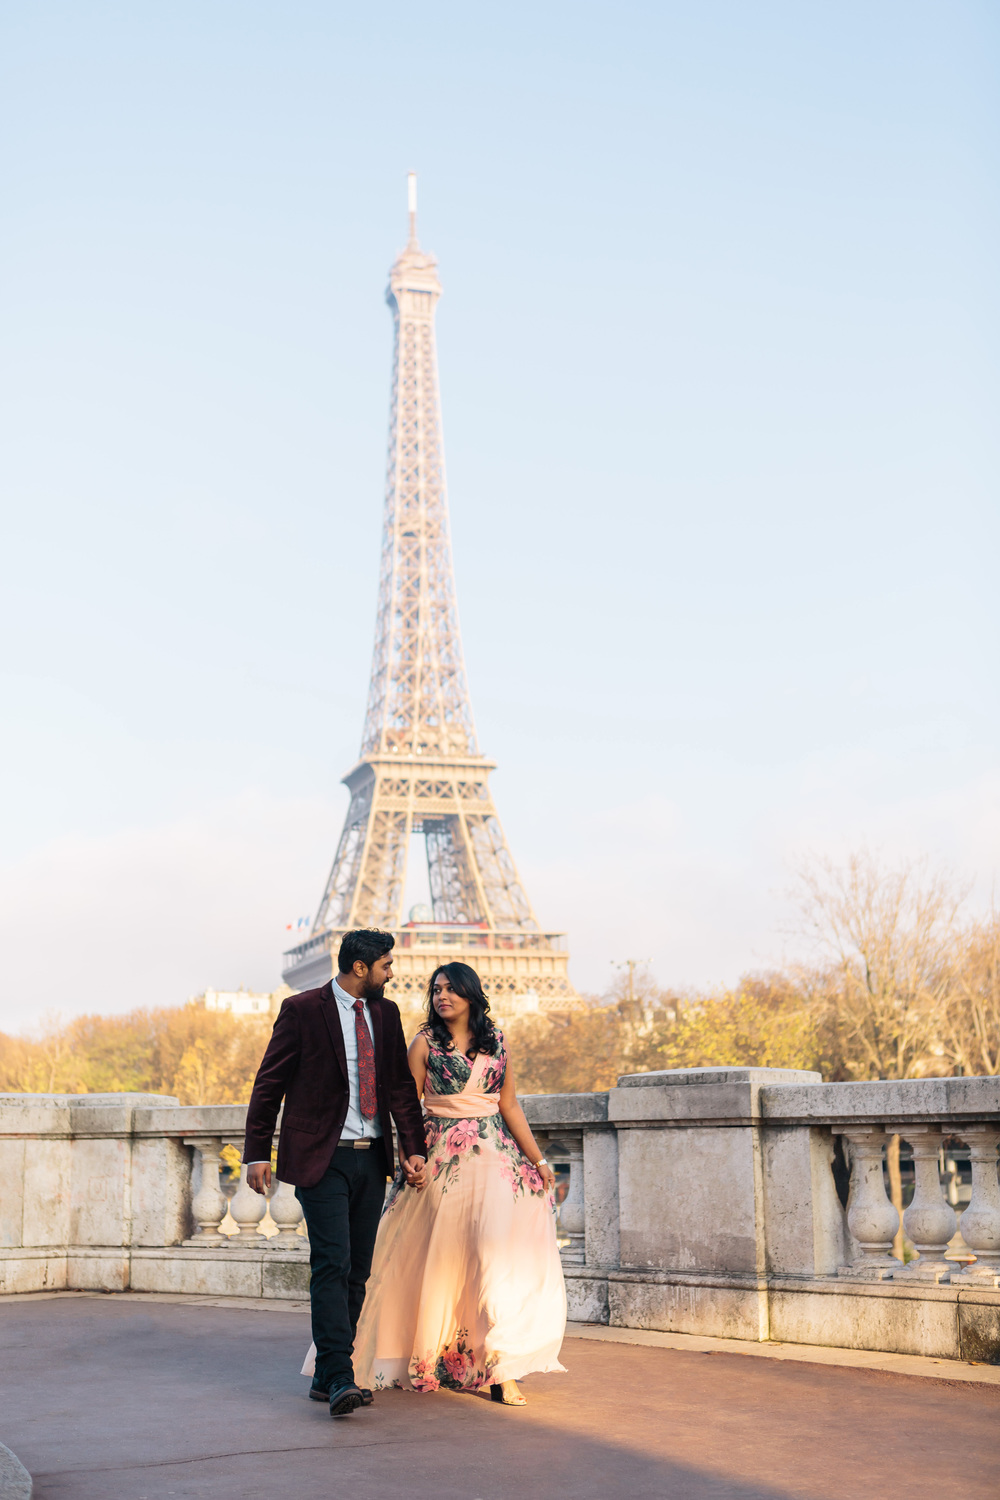 romantic engagement couple portrait at bir hakeim bridge with view of eiffel tower by paris photographer federico guendel